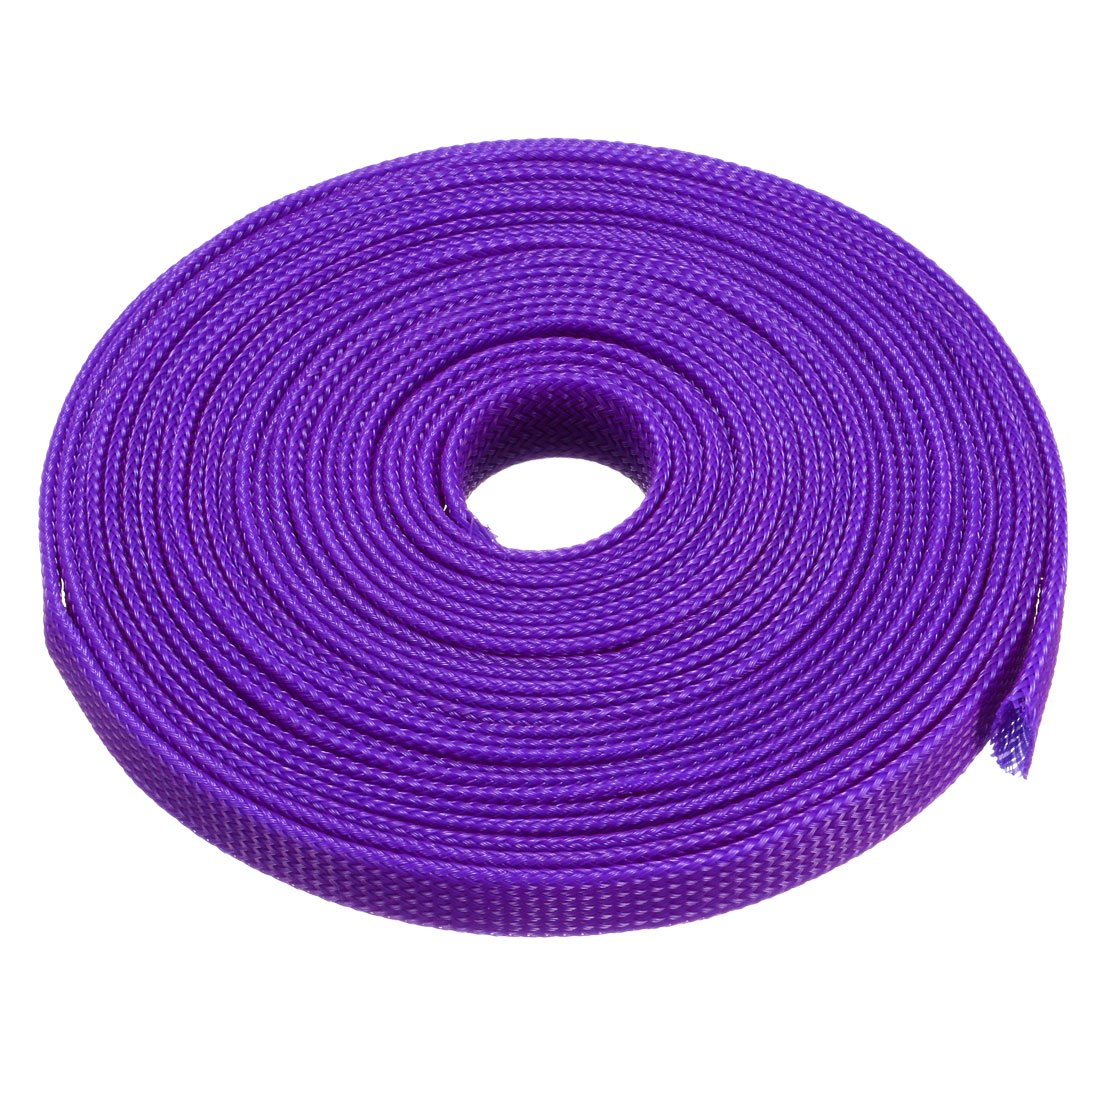 uxcell PET Braided Sleeving 16.4 Feet 5m Expandable Cable Wrap 10mm Diameter Wire Sheath Purple